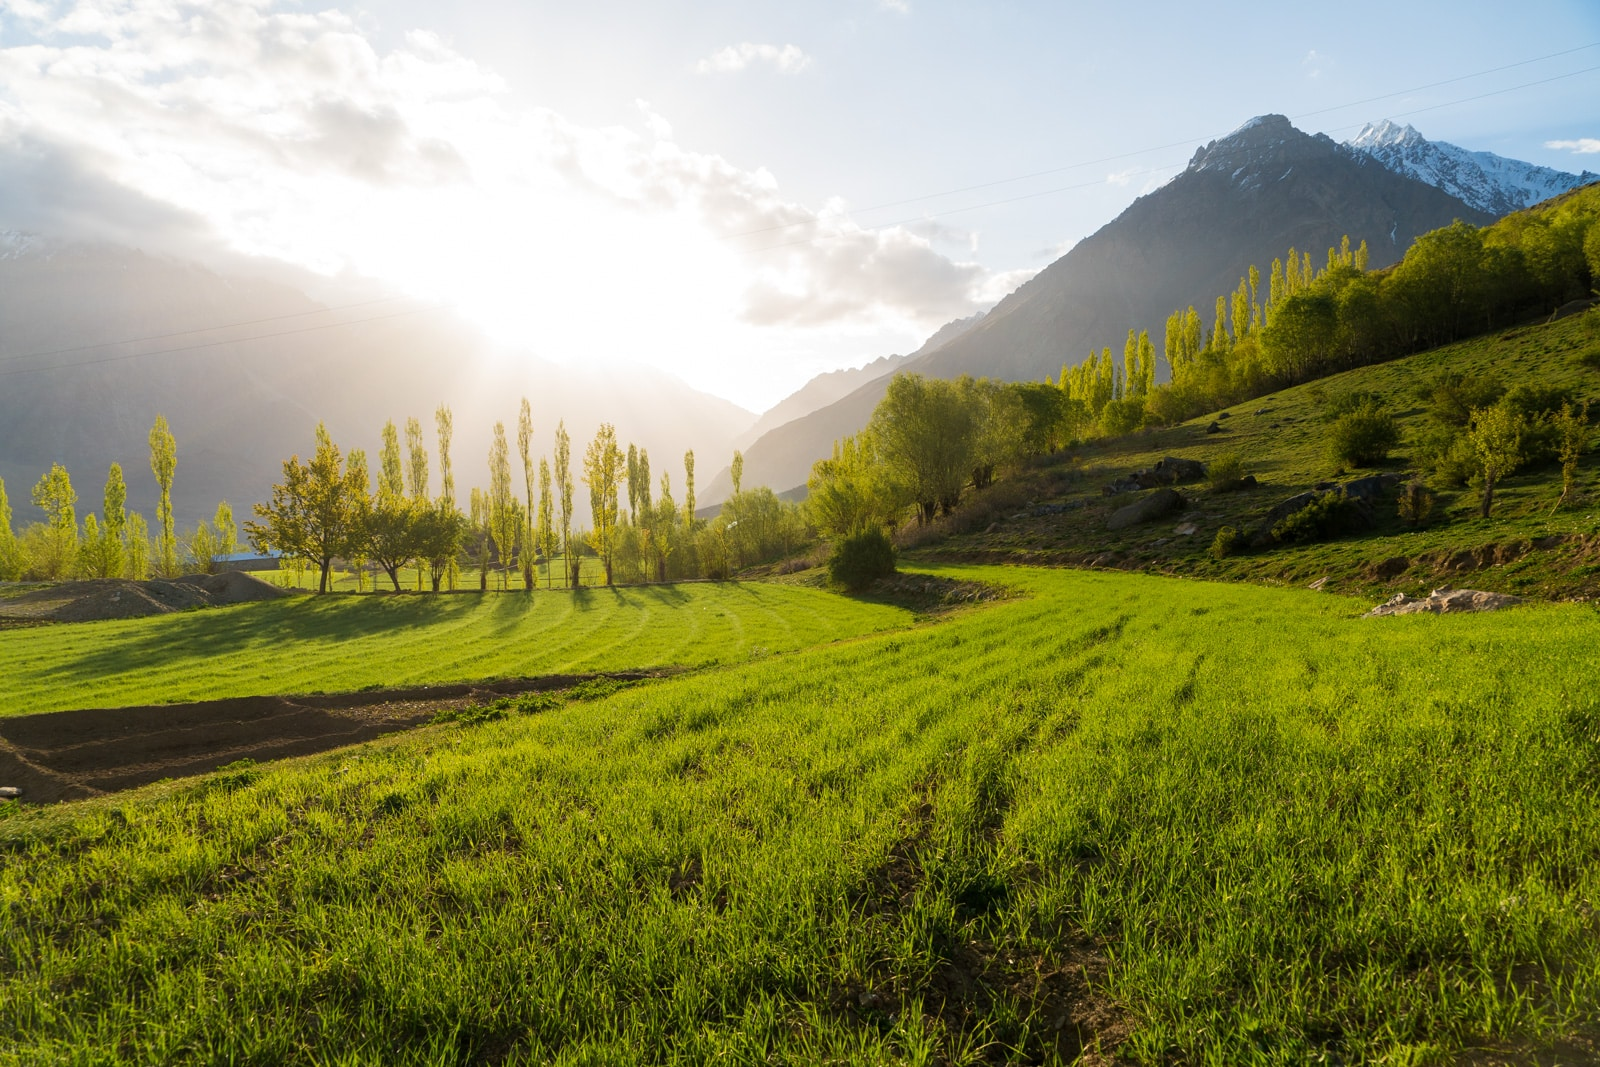 Phander Valley travel guide - Sunrise over wheat fields in Phander, Pakistan - Lost With Purpose travel blog